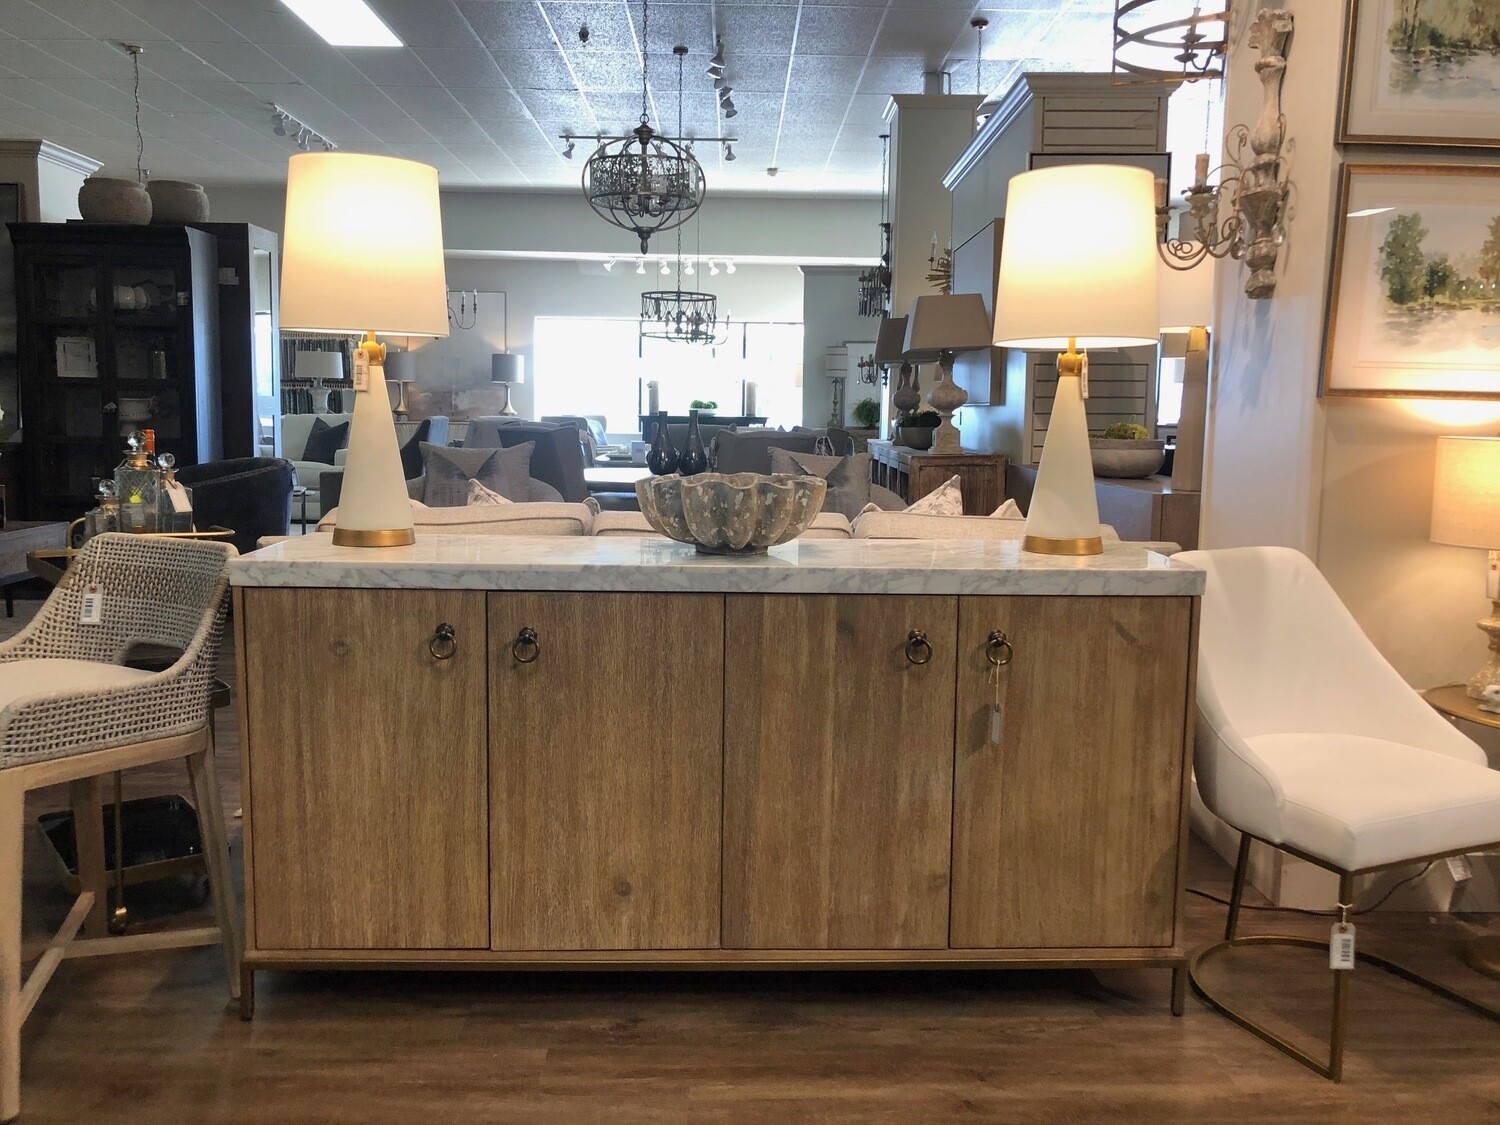 Sideboard in Stone Wash with White Marble